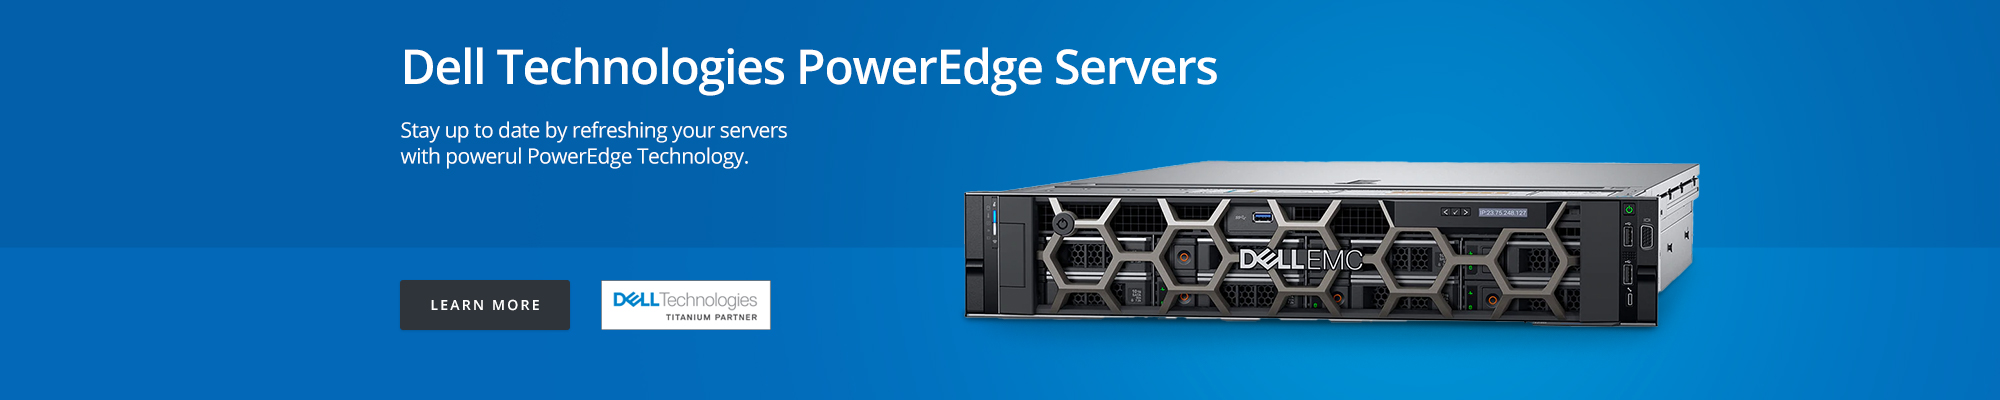 Dell Technologies PowerEdge Servers